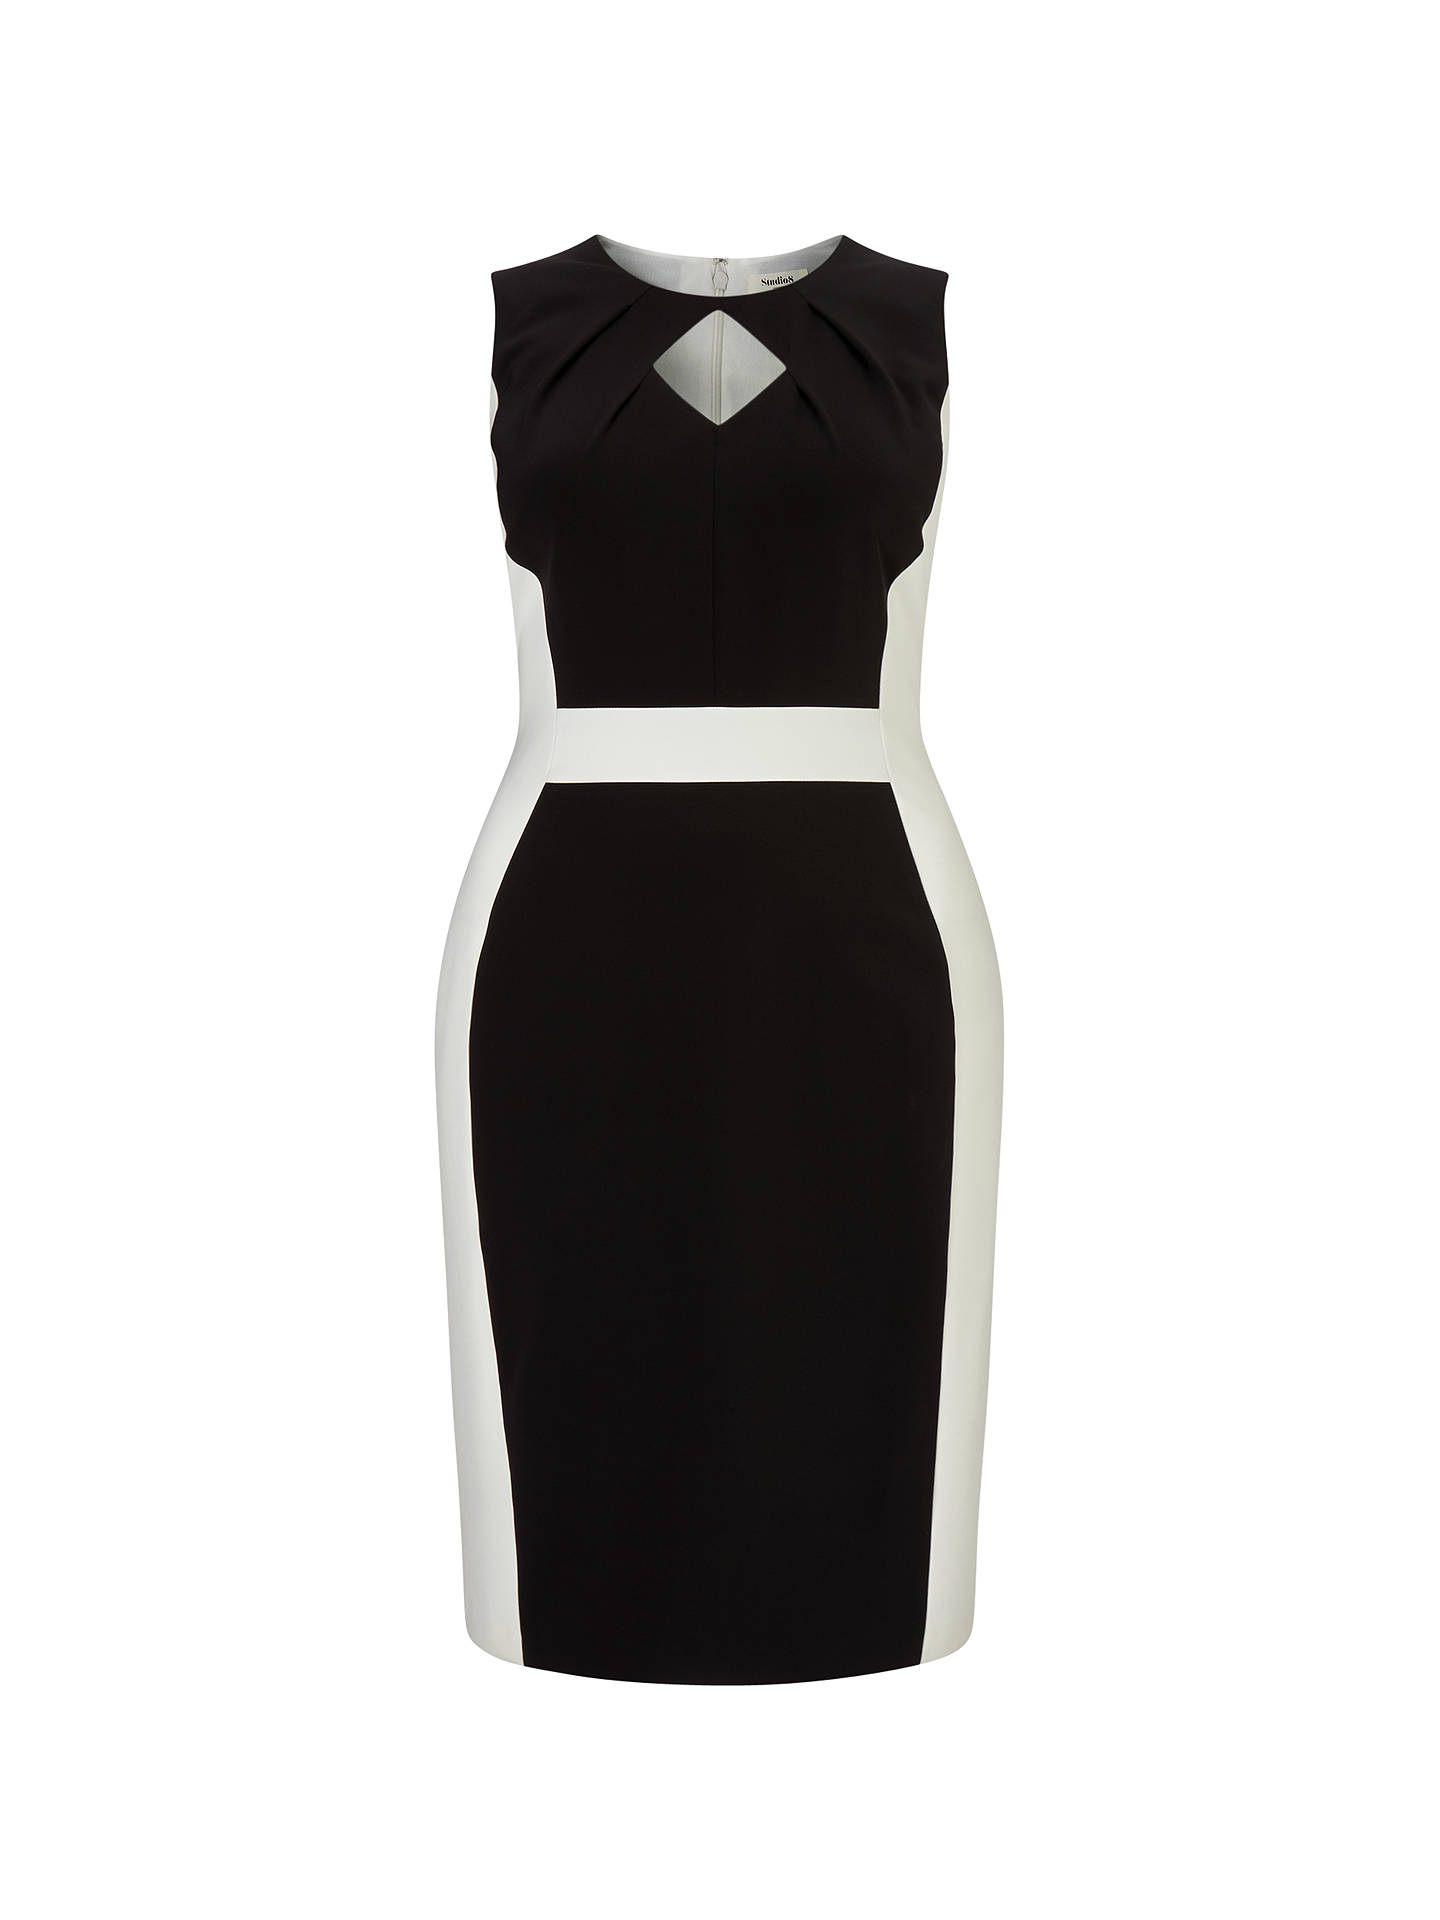 BuyStudio 8 Alberta Dress, Black/Ivory, 24 Online at johnlewis.com